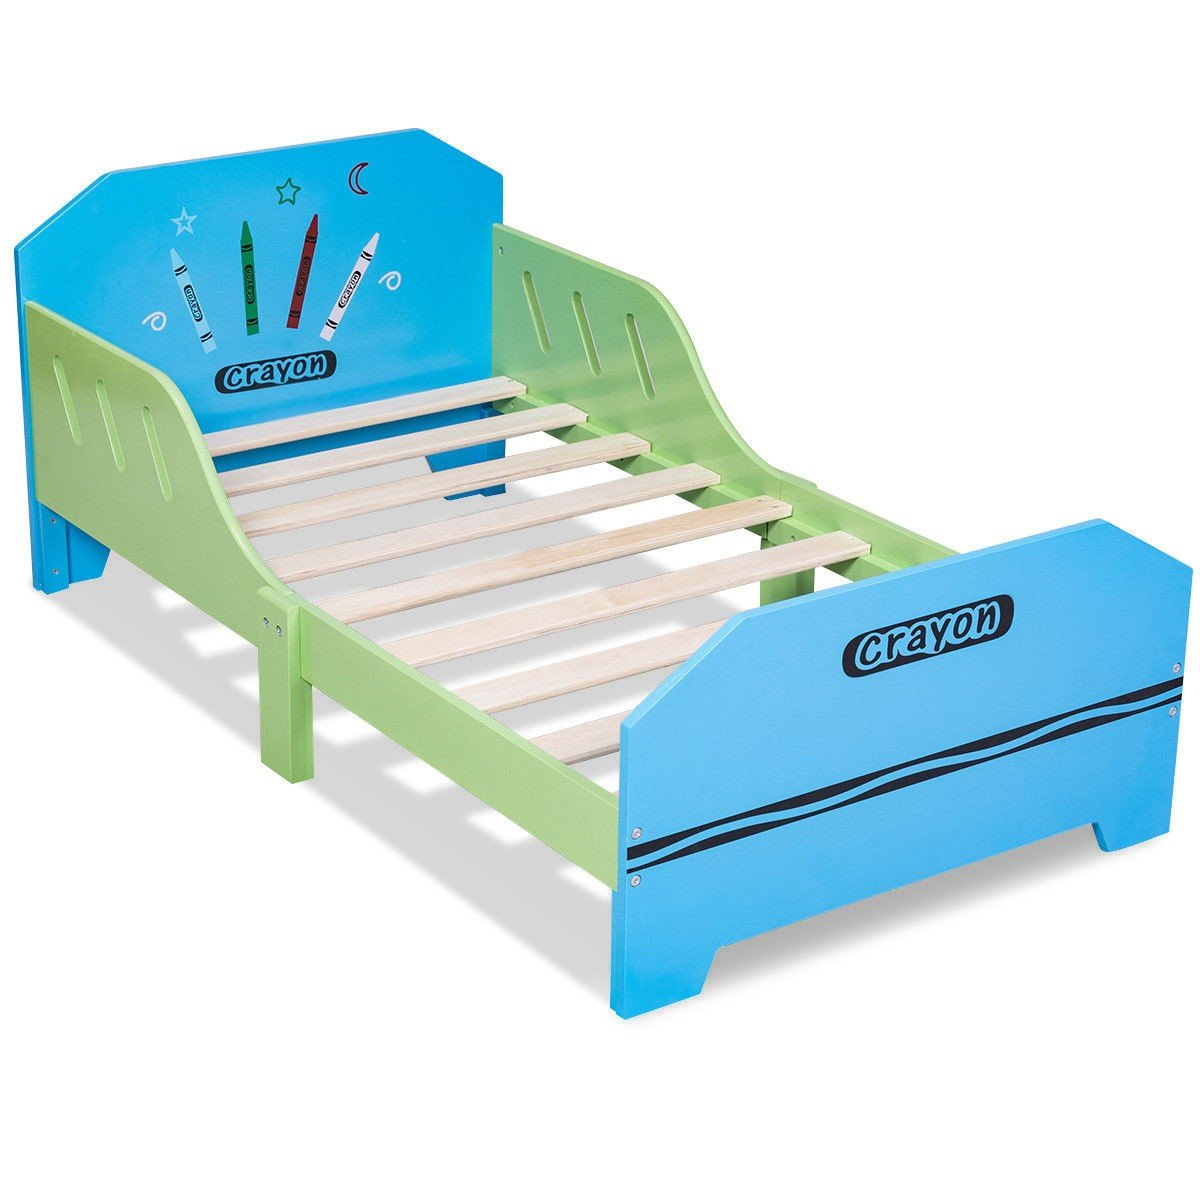 Crayon Themed Wood Kids Bed with Bed Rails - By Choice Products